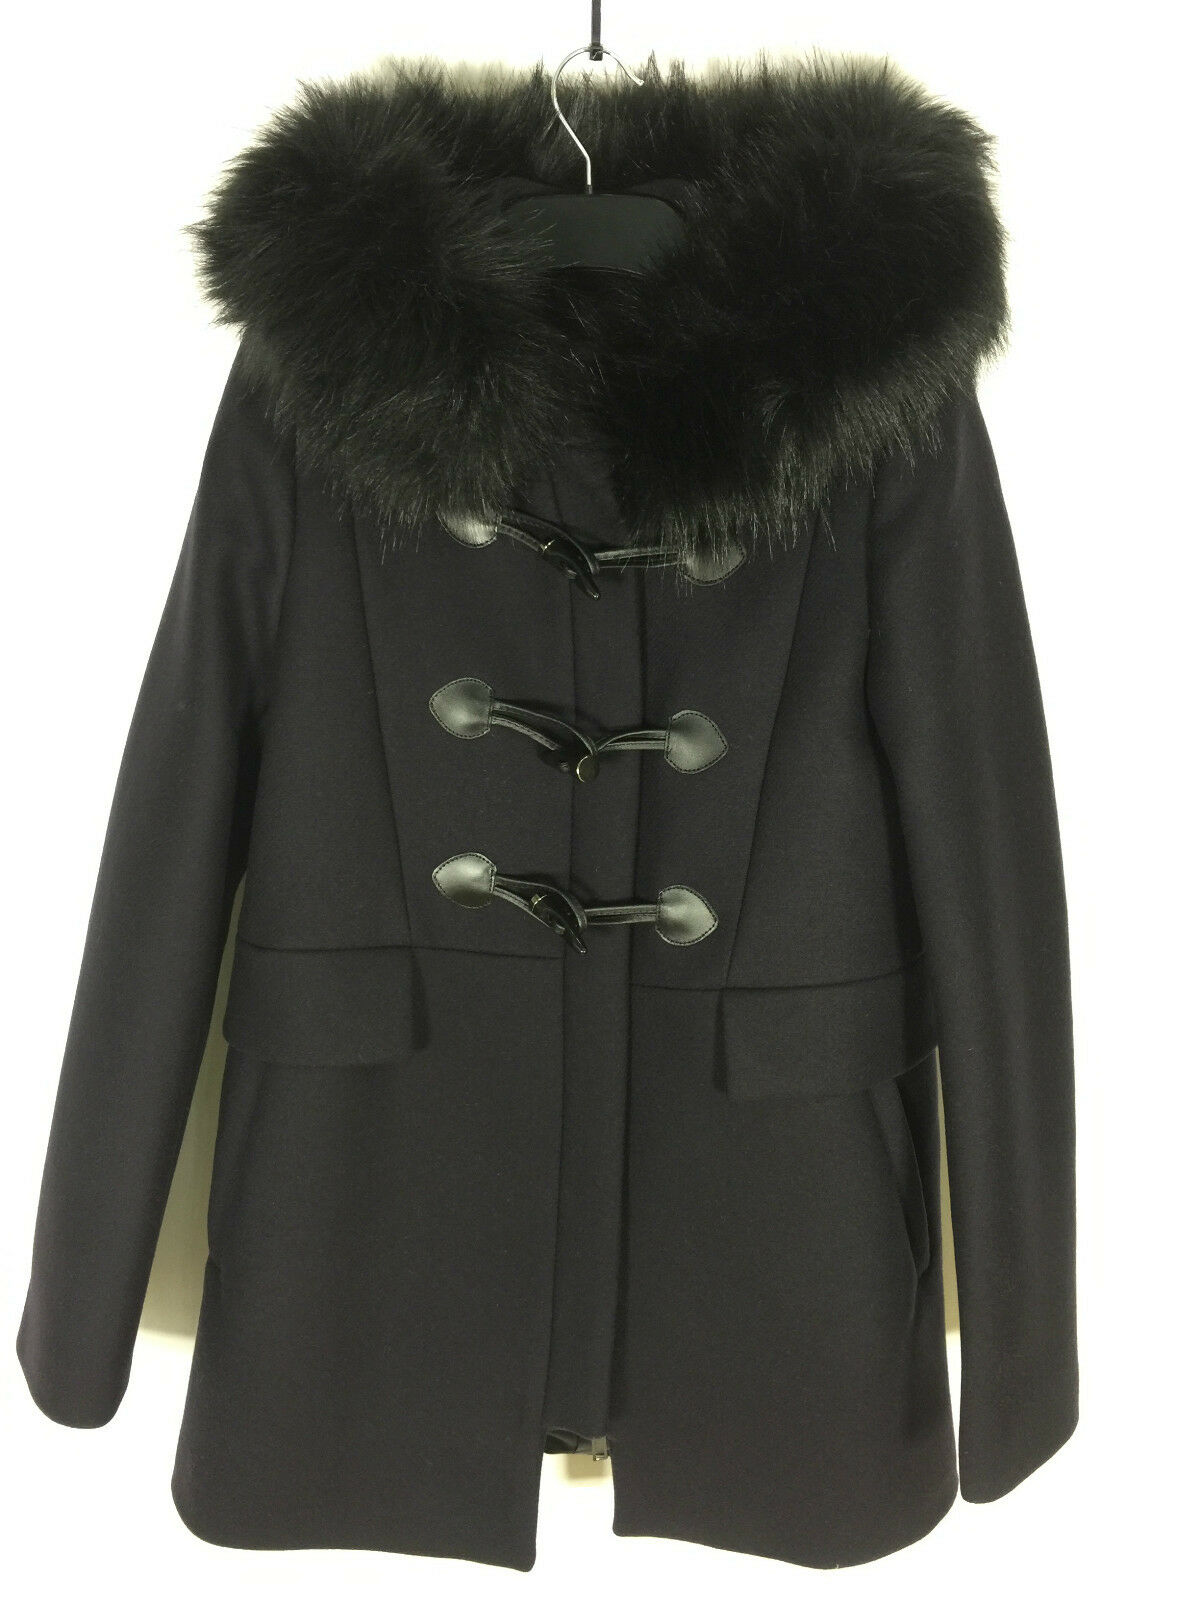 ZARA NAVY blueE DUFFLE COAT WITH FAUX FUR COLLAR SIZE SMALL REF 7904 744